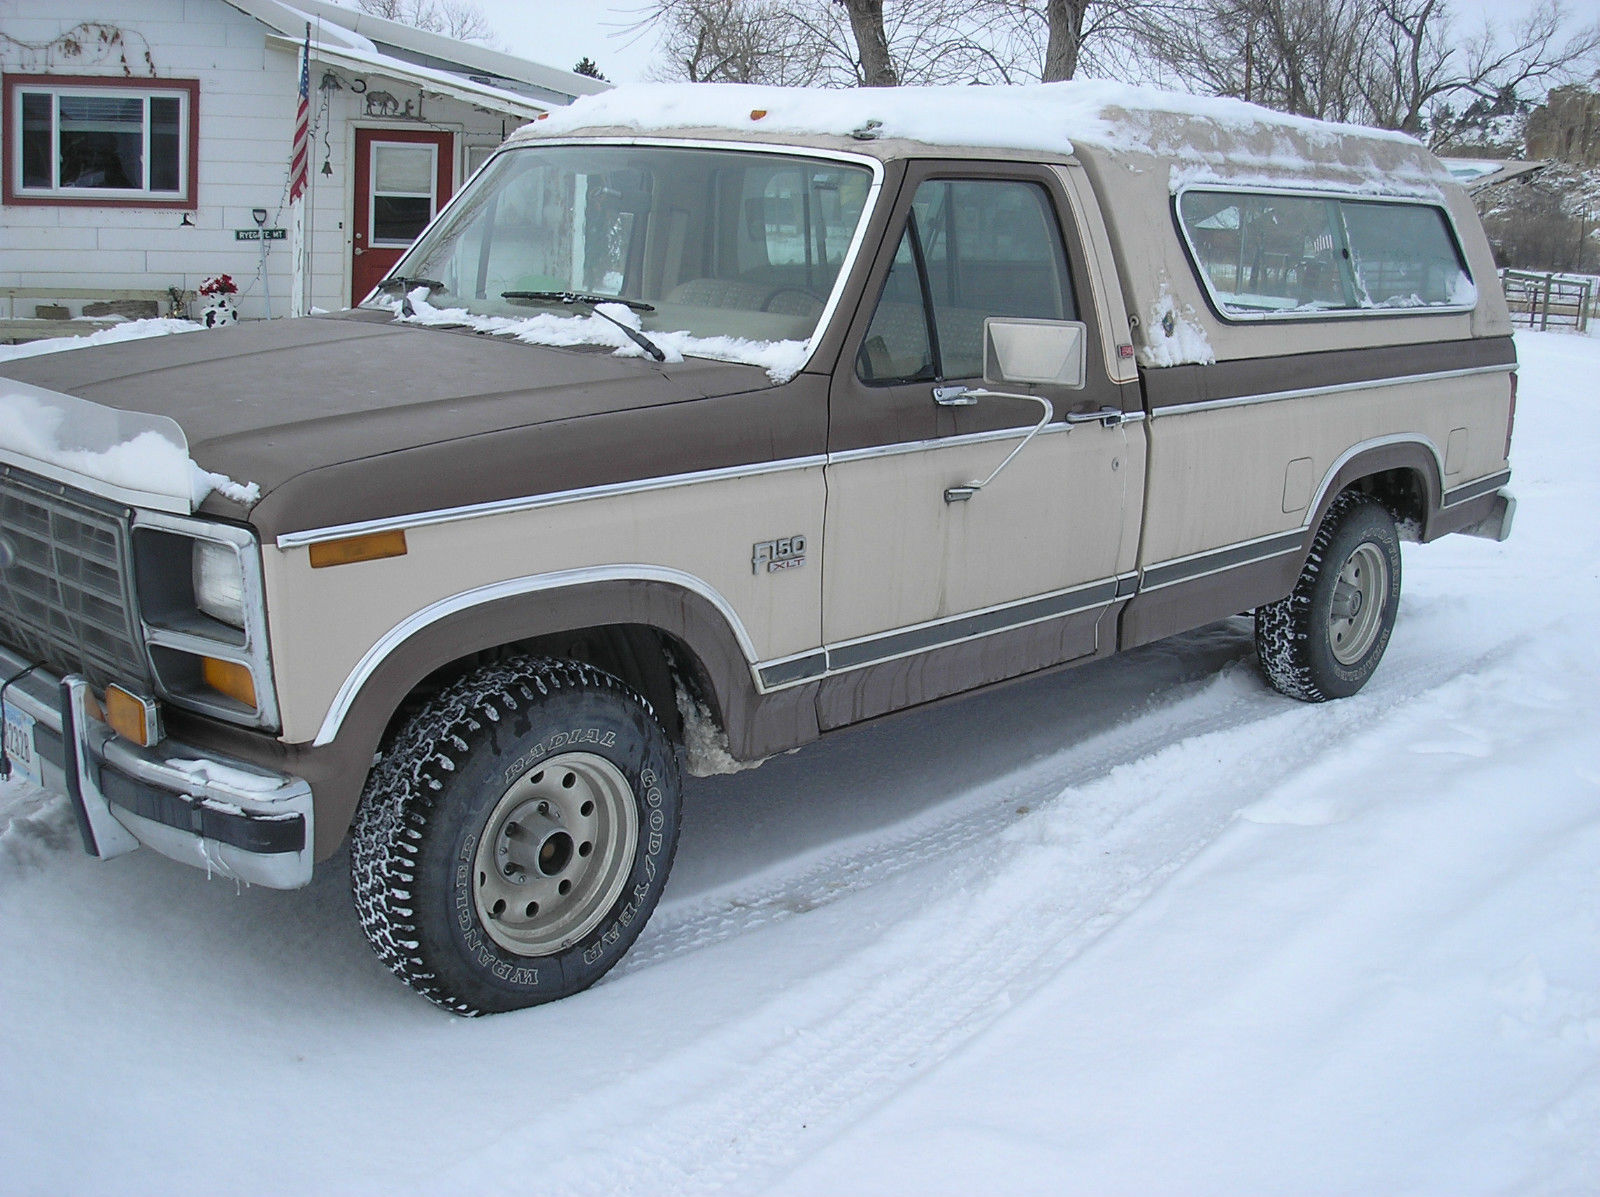 1982 ford f150 xlt lariat pickup truck 2 wheel drive 32000 miles classic ford f 150 1982 for sale. Black Bedroom Furniture Sets. Home Design Ideas